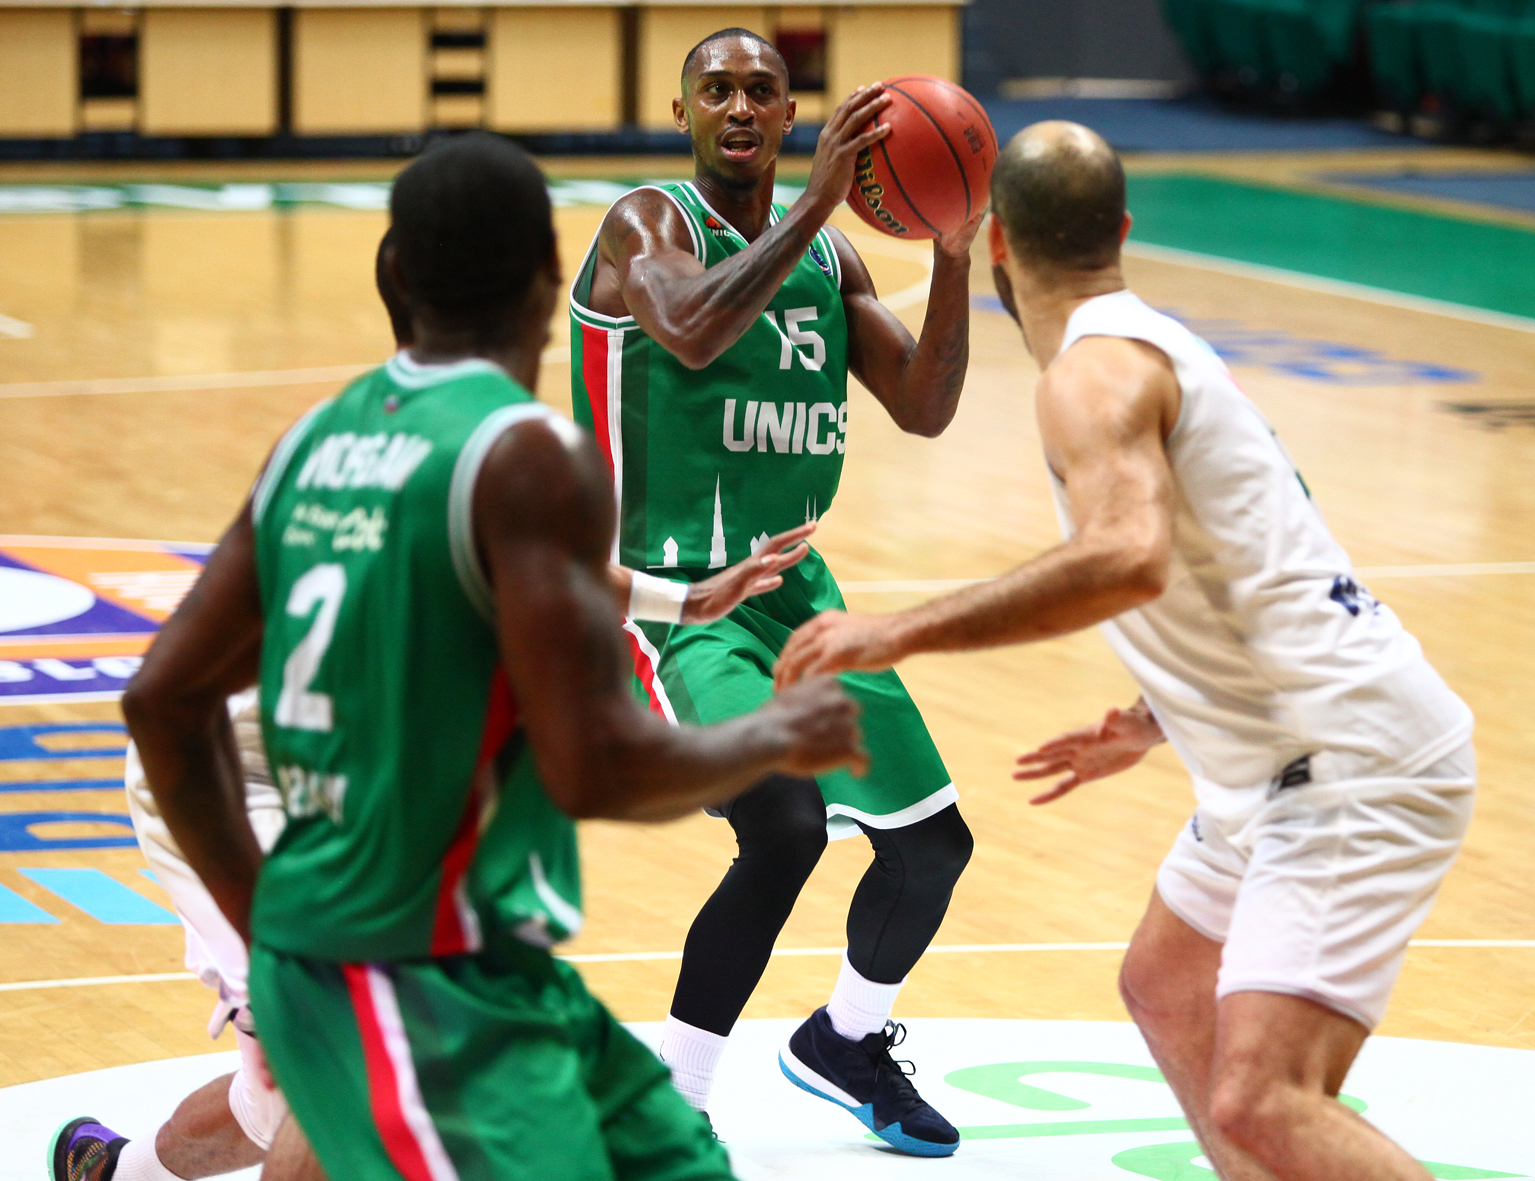 UNICS Tames Zielona Gora, Improves To 3-0